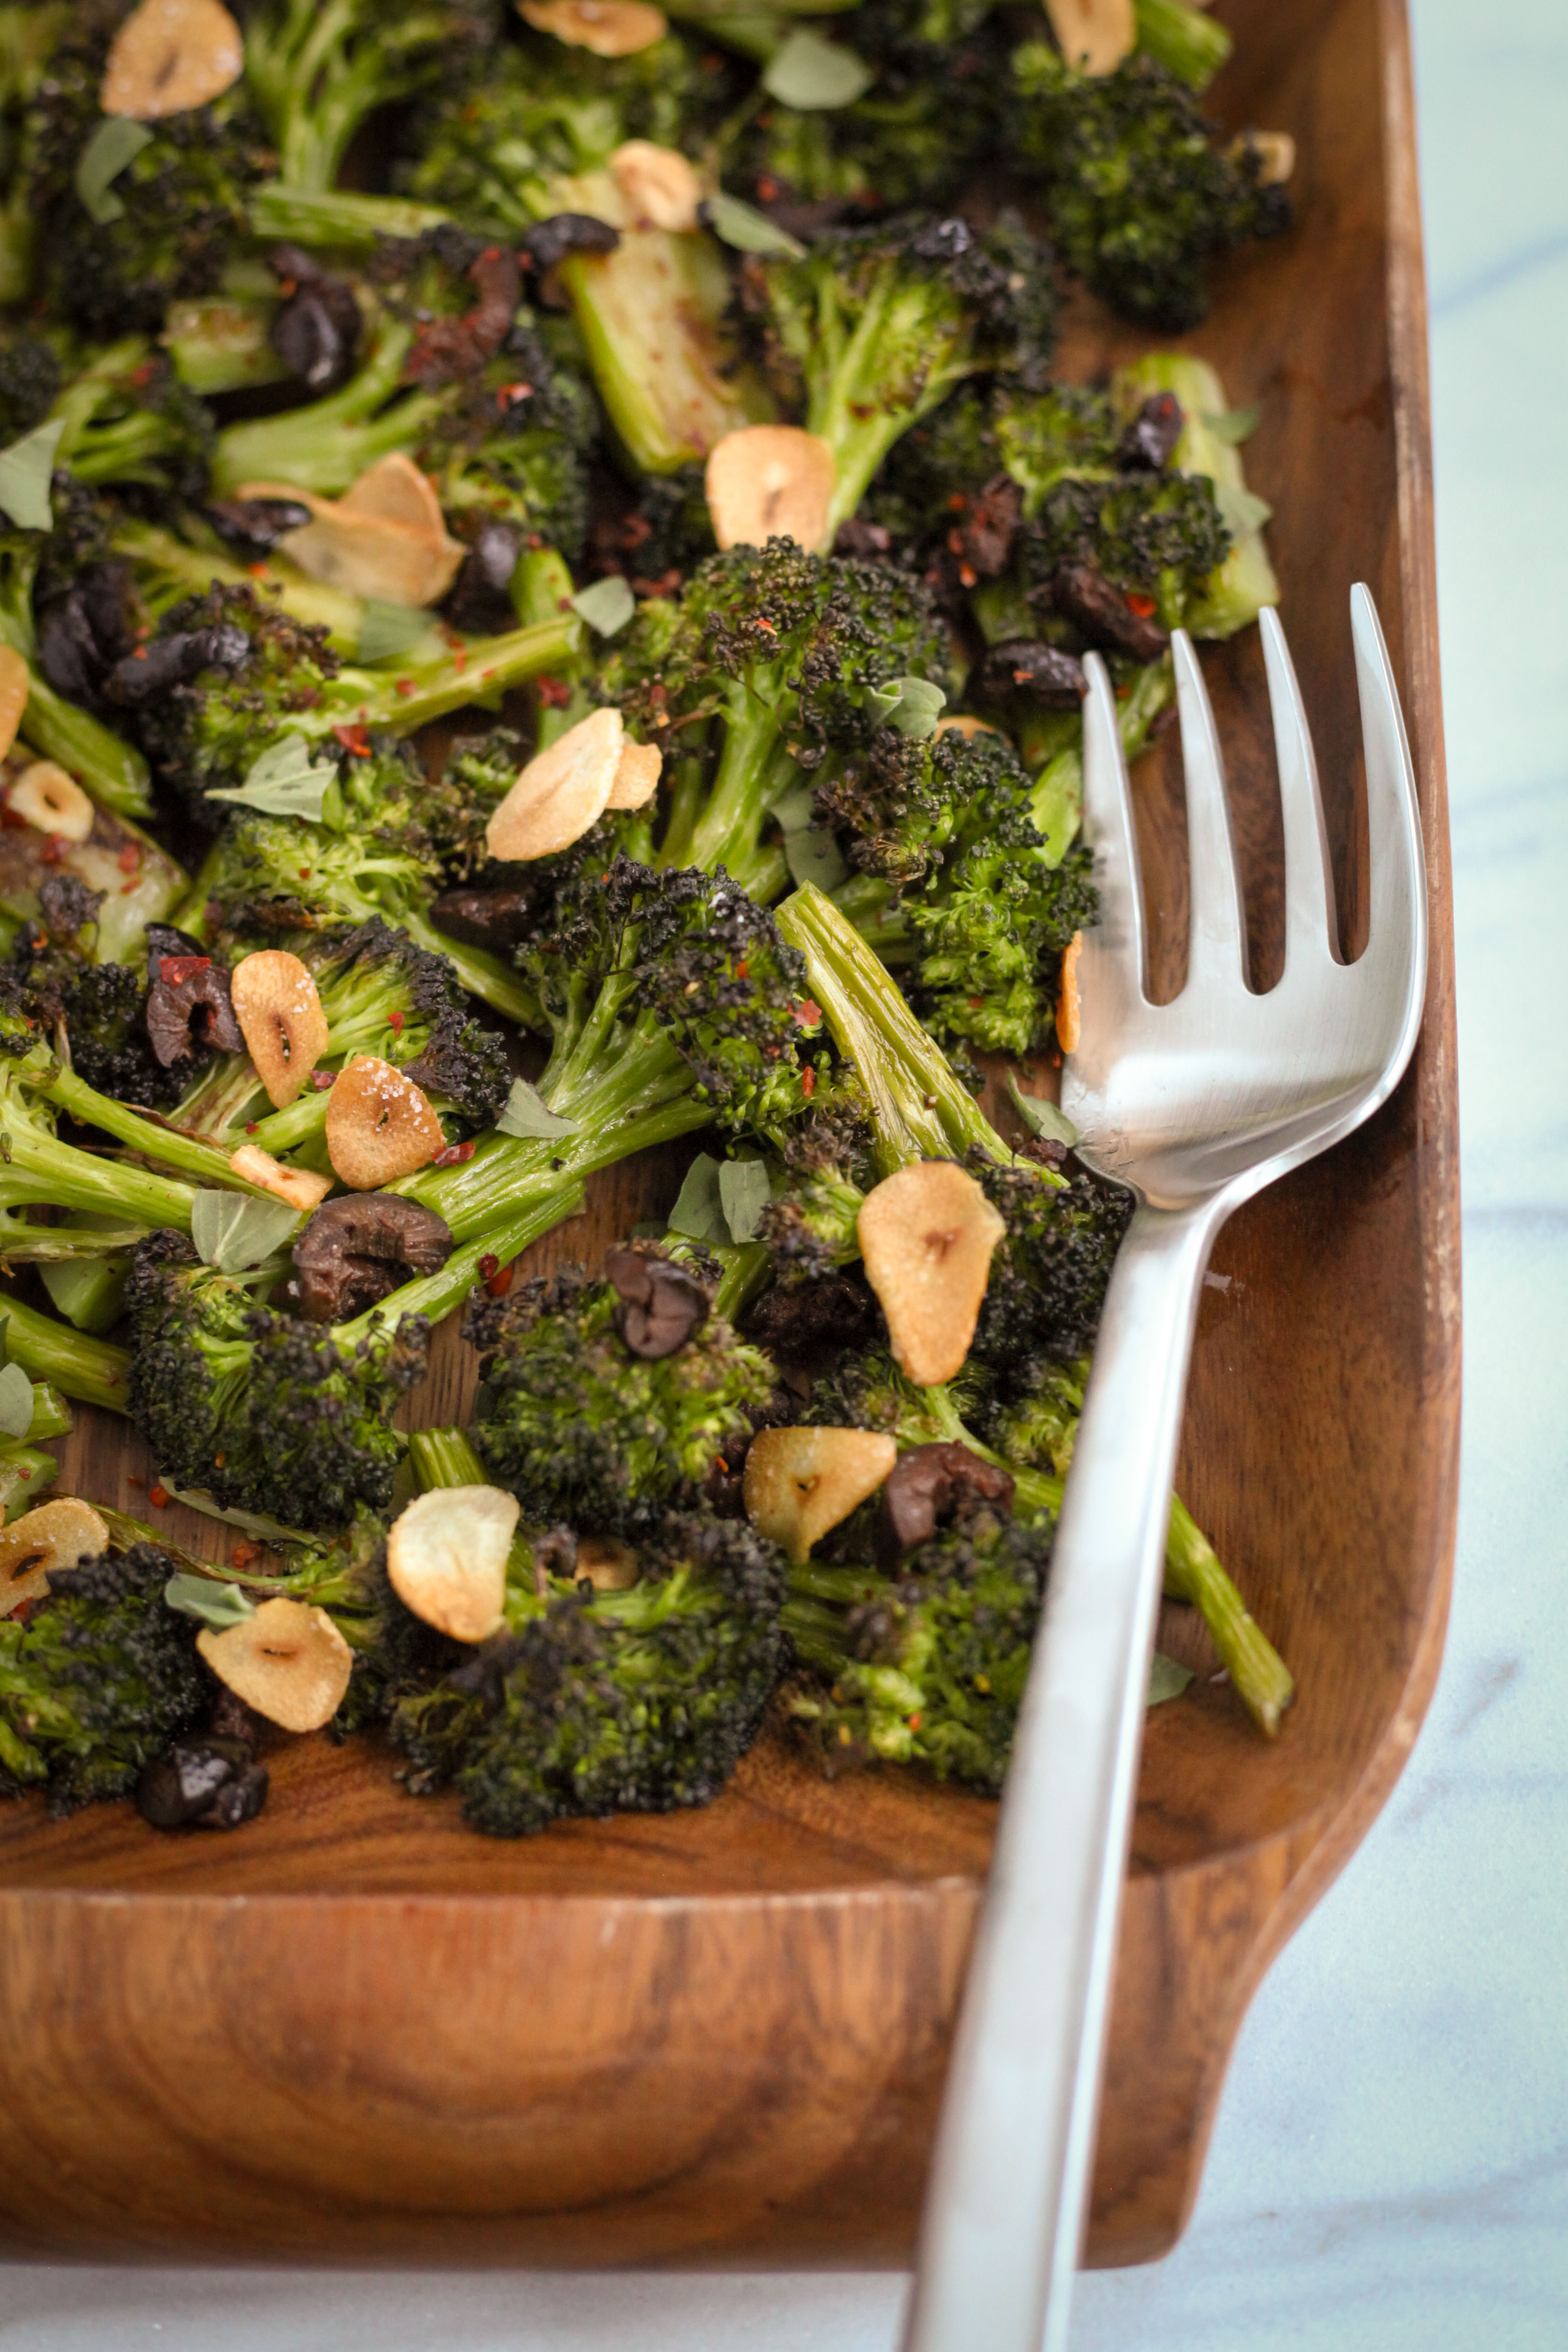 Roasted Broccoli With Olives, Garlic, and Oregano | A Modest Feast | @amodestfeast #healthyrecipes #glutenfreerecipes #vegetarianrecipes #veganrecipes